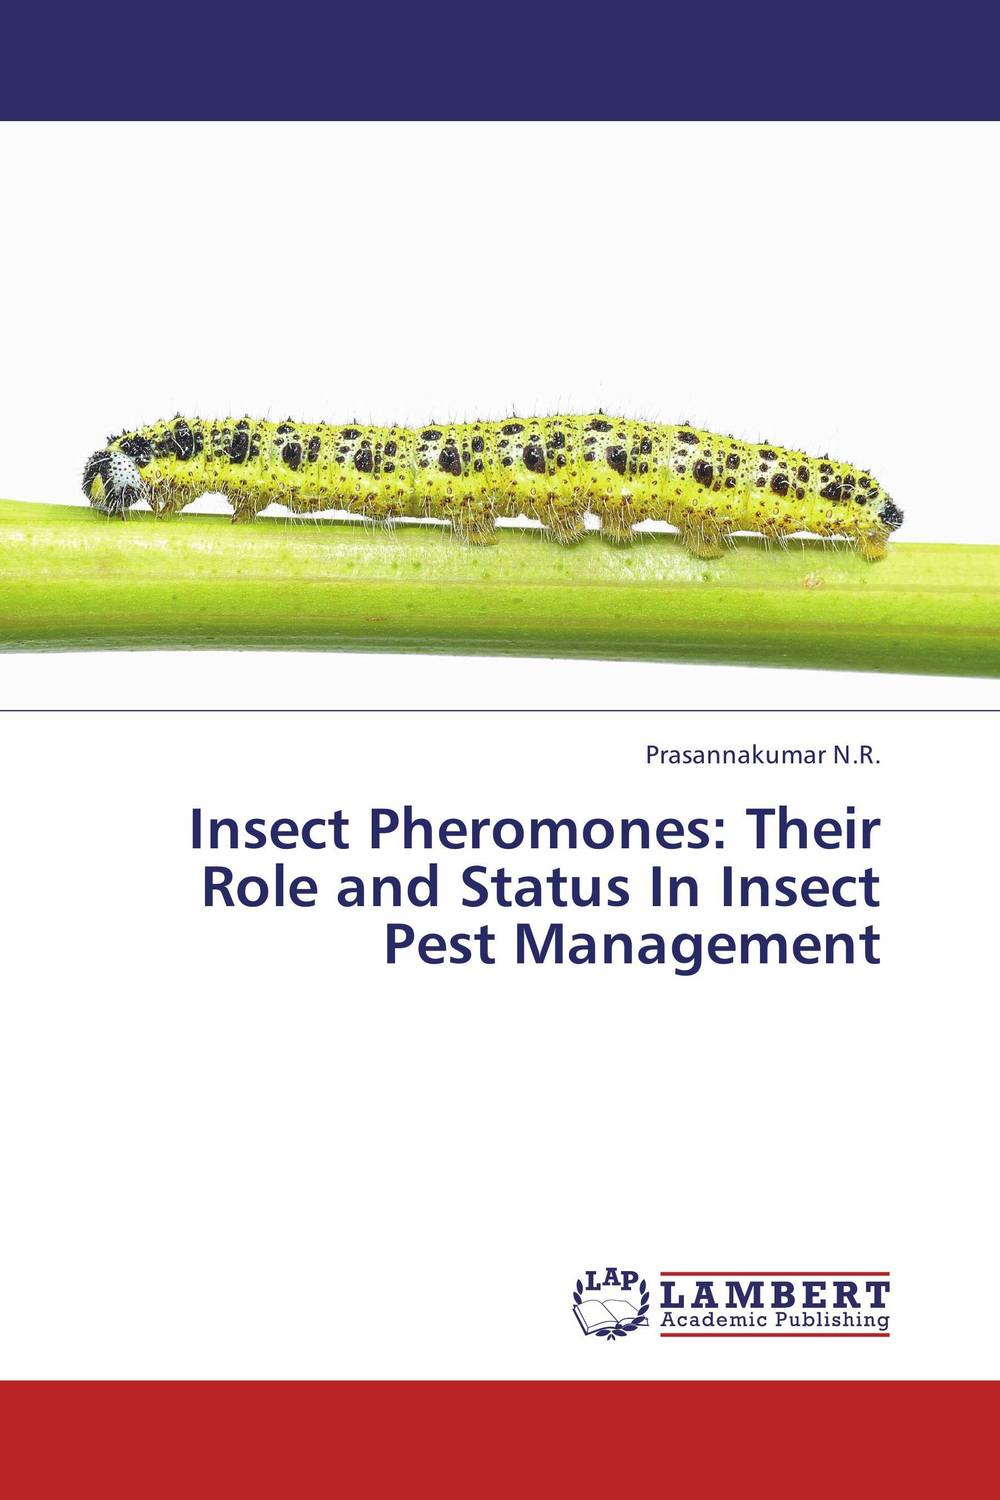 Insect Pheromones: Their Role and Status In Insect Pest Management